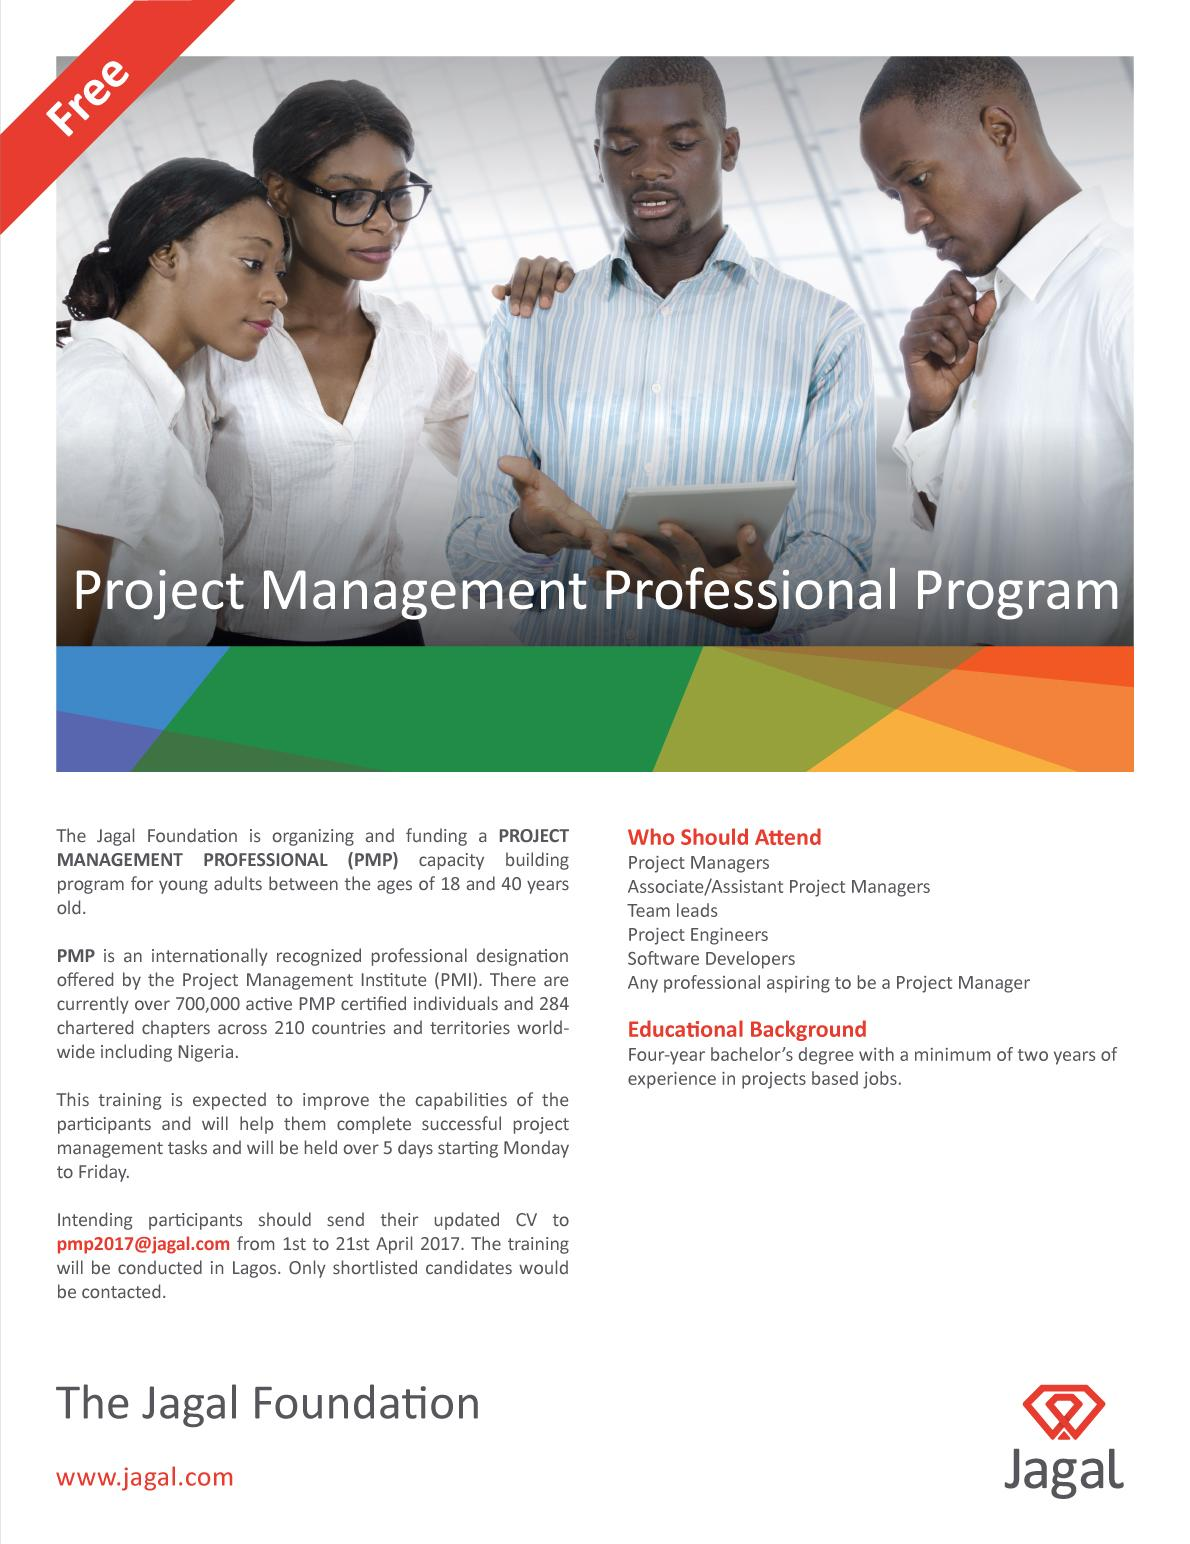 Free project management professional program at jagal foundation free project management professional program at jagal foundation xflitez Image collections